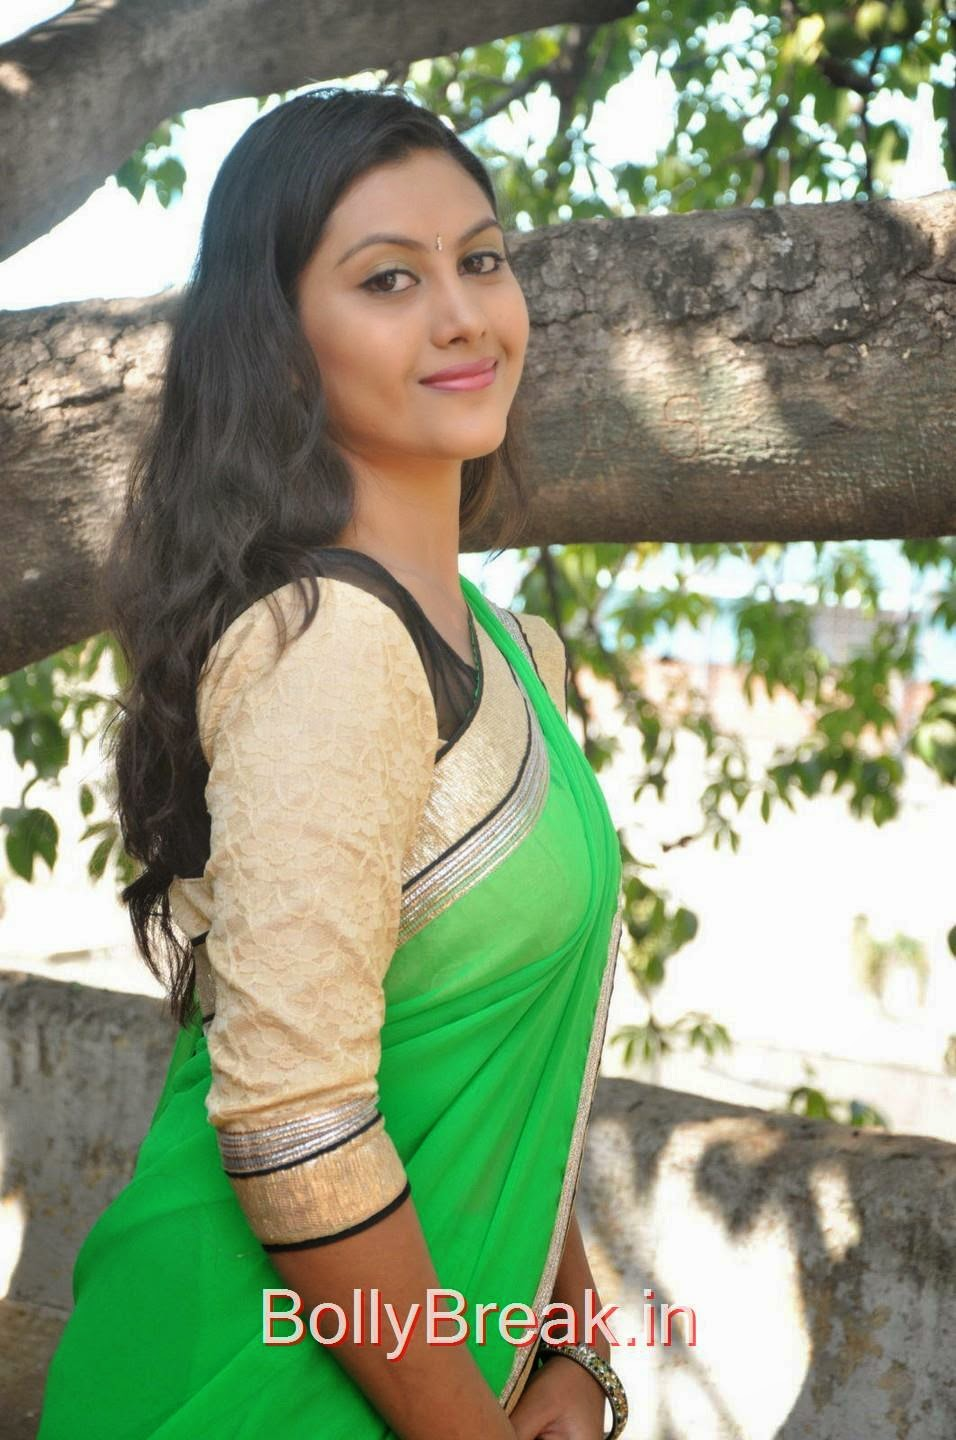 Priyanka Photoshoot Stills, Hot Pics Of Priyanka In Green Saree from SS Art Productions Production No 1 Movie